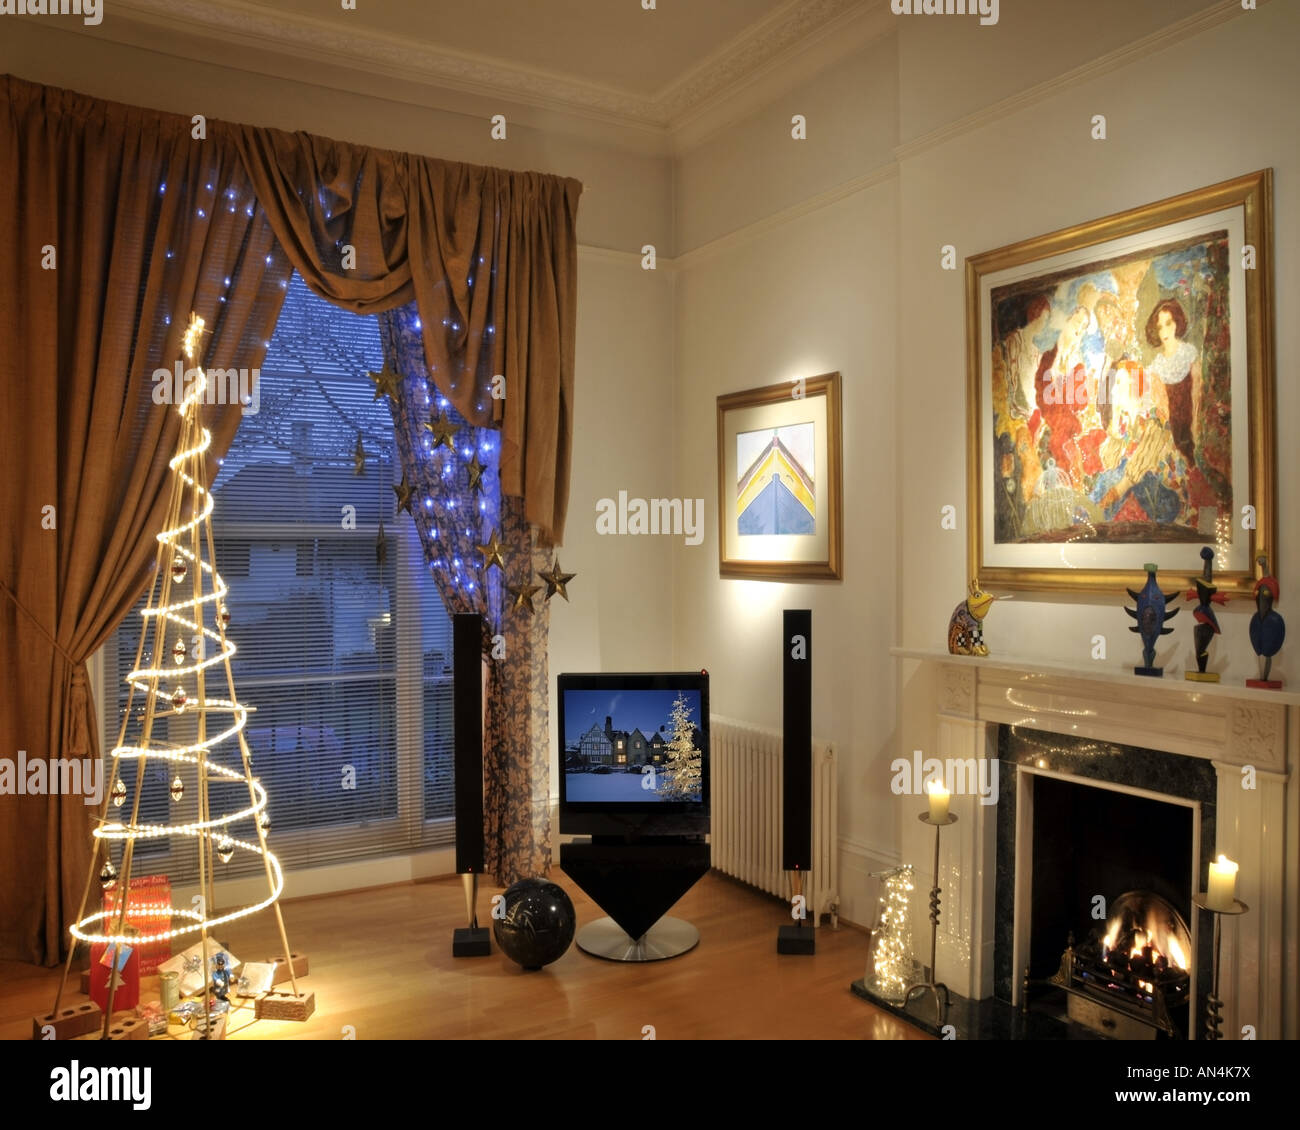 Cosy Home At Christmas By The Fire Stockfotos & Cosy Home At ...